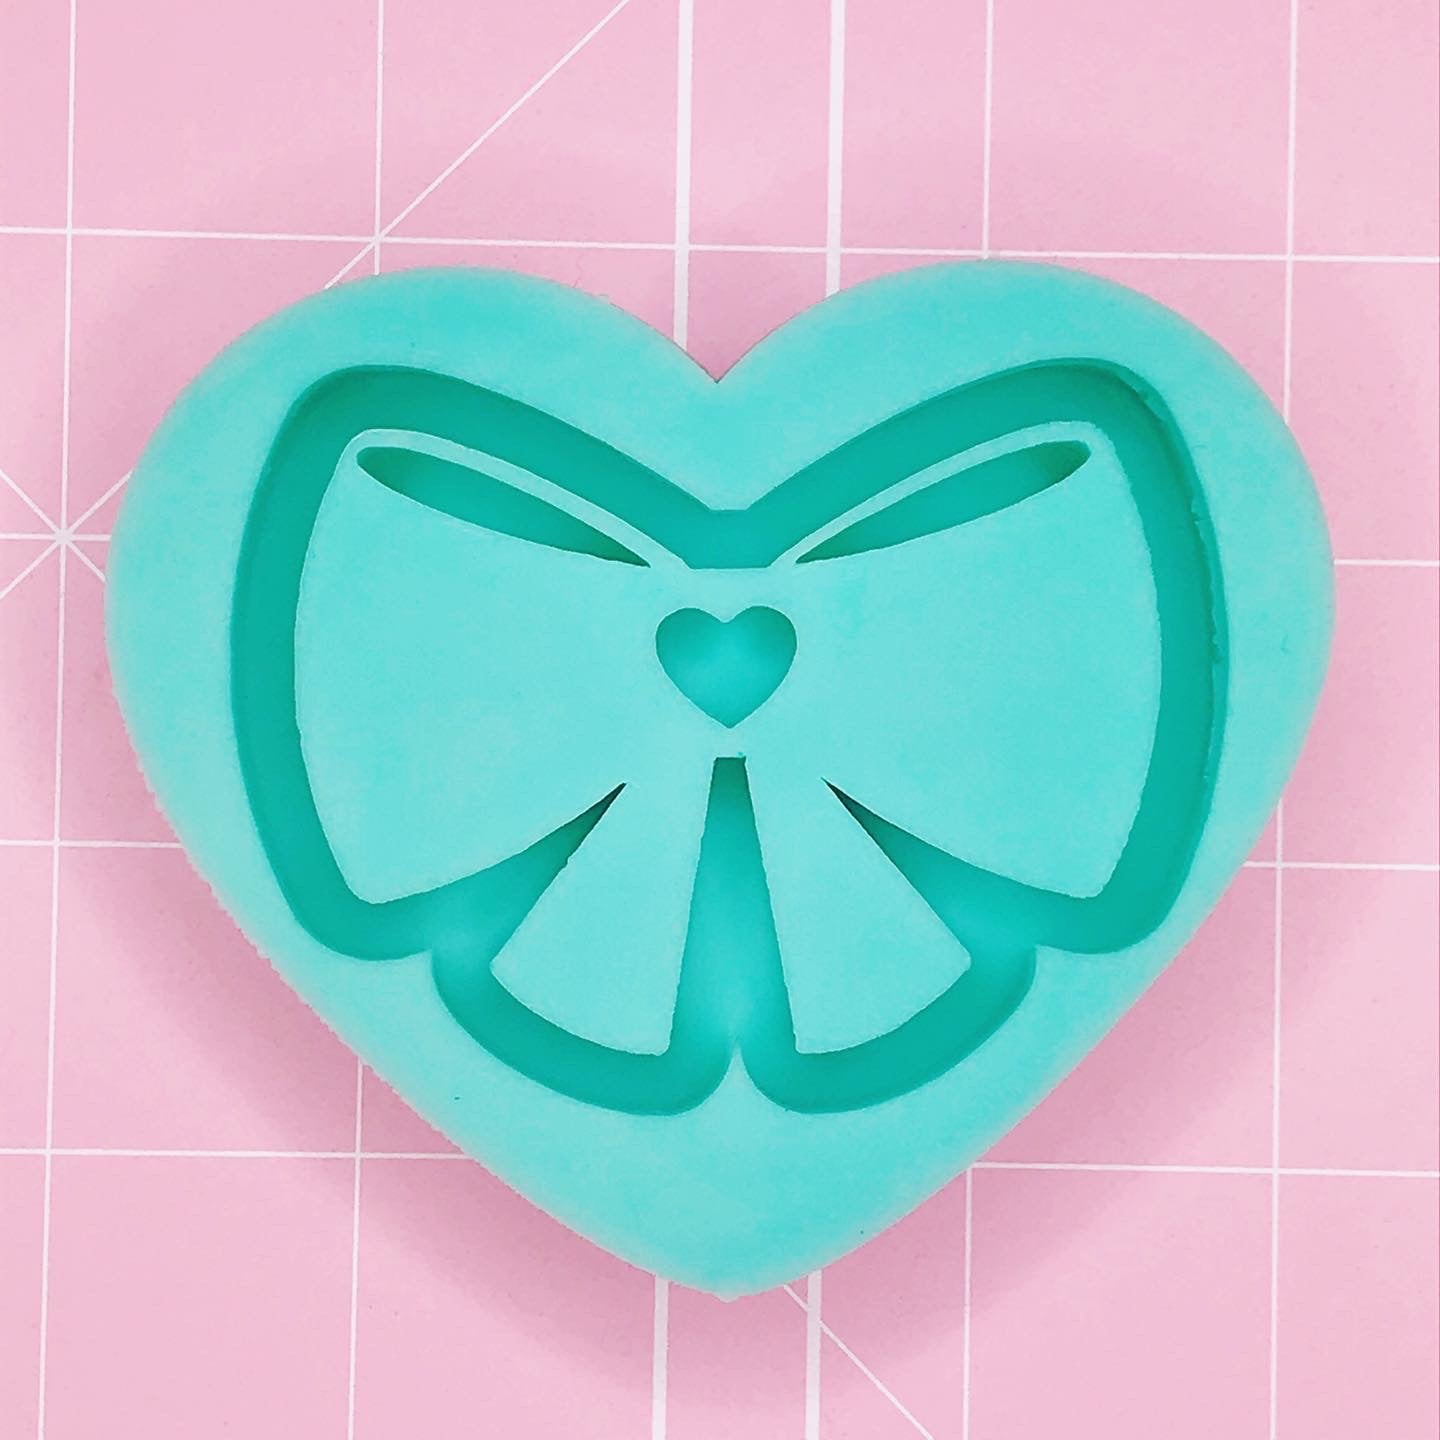 Heart Shape Mold - Magical Bow (Backed) - Chala Atelier & Supplies